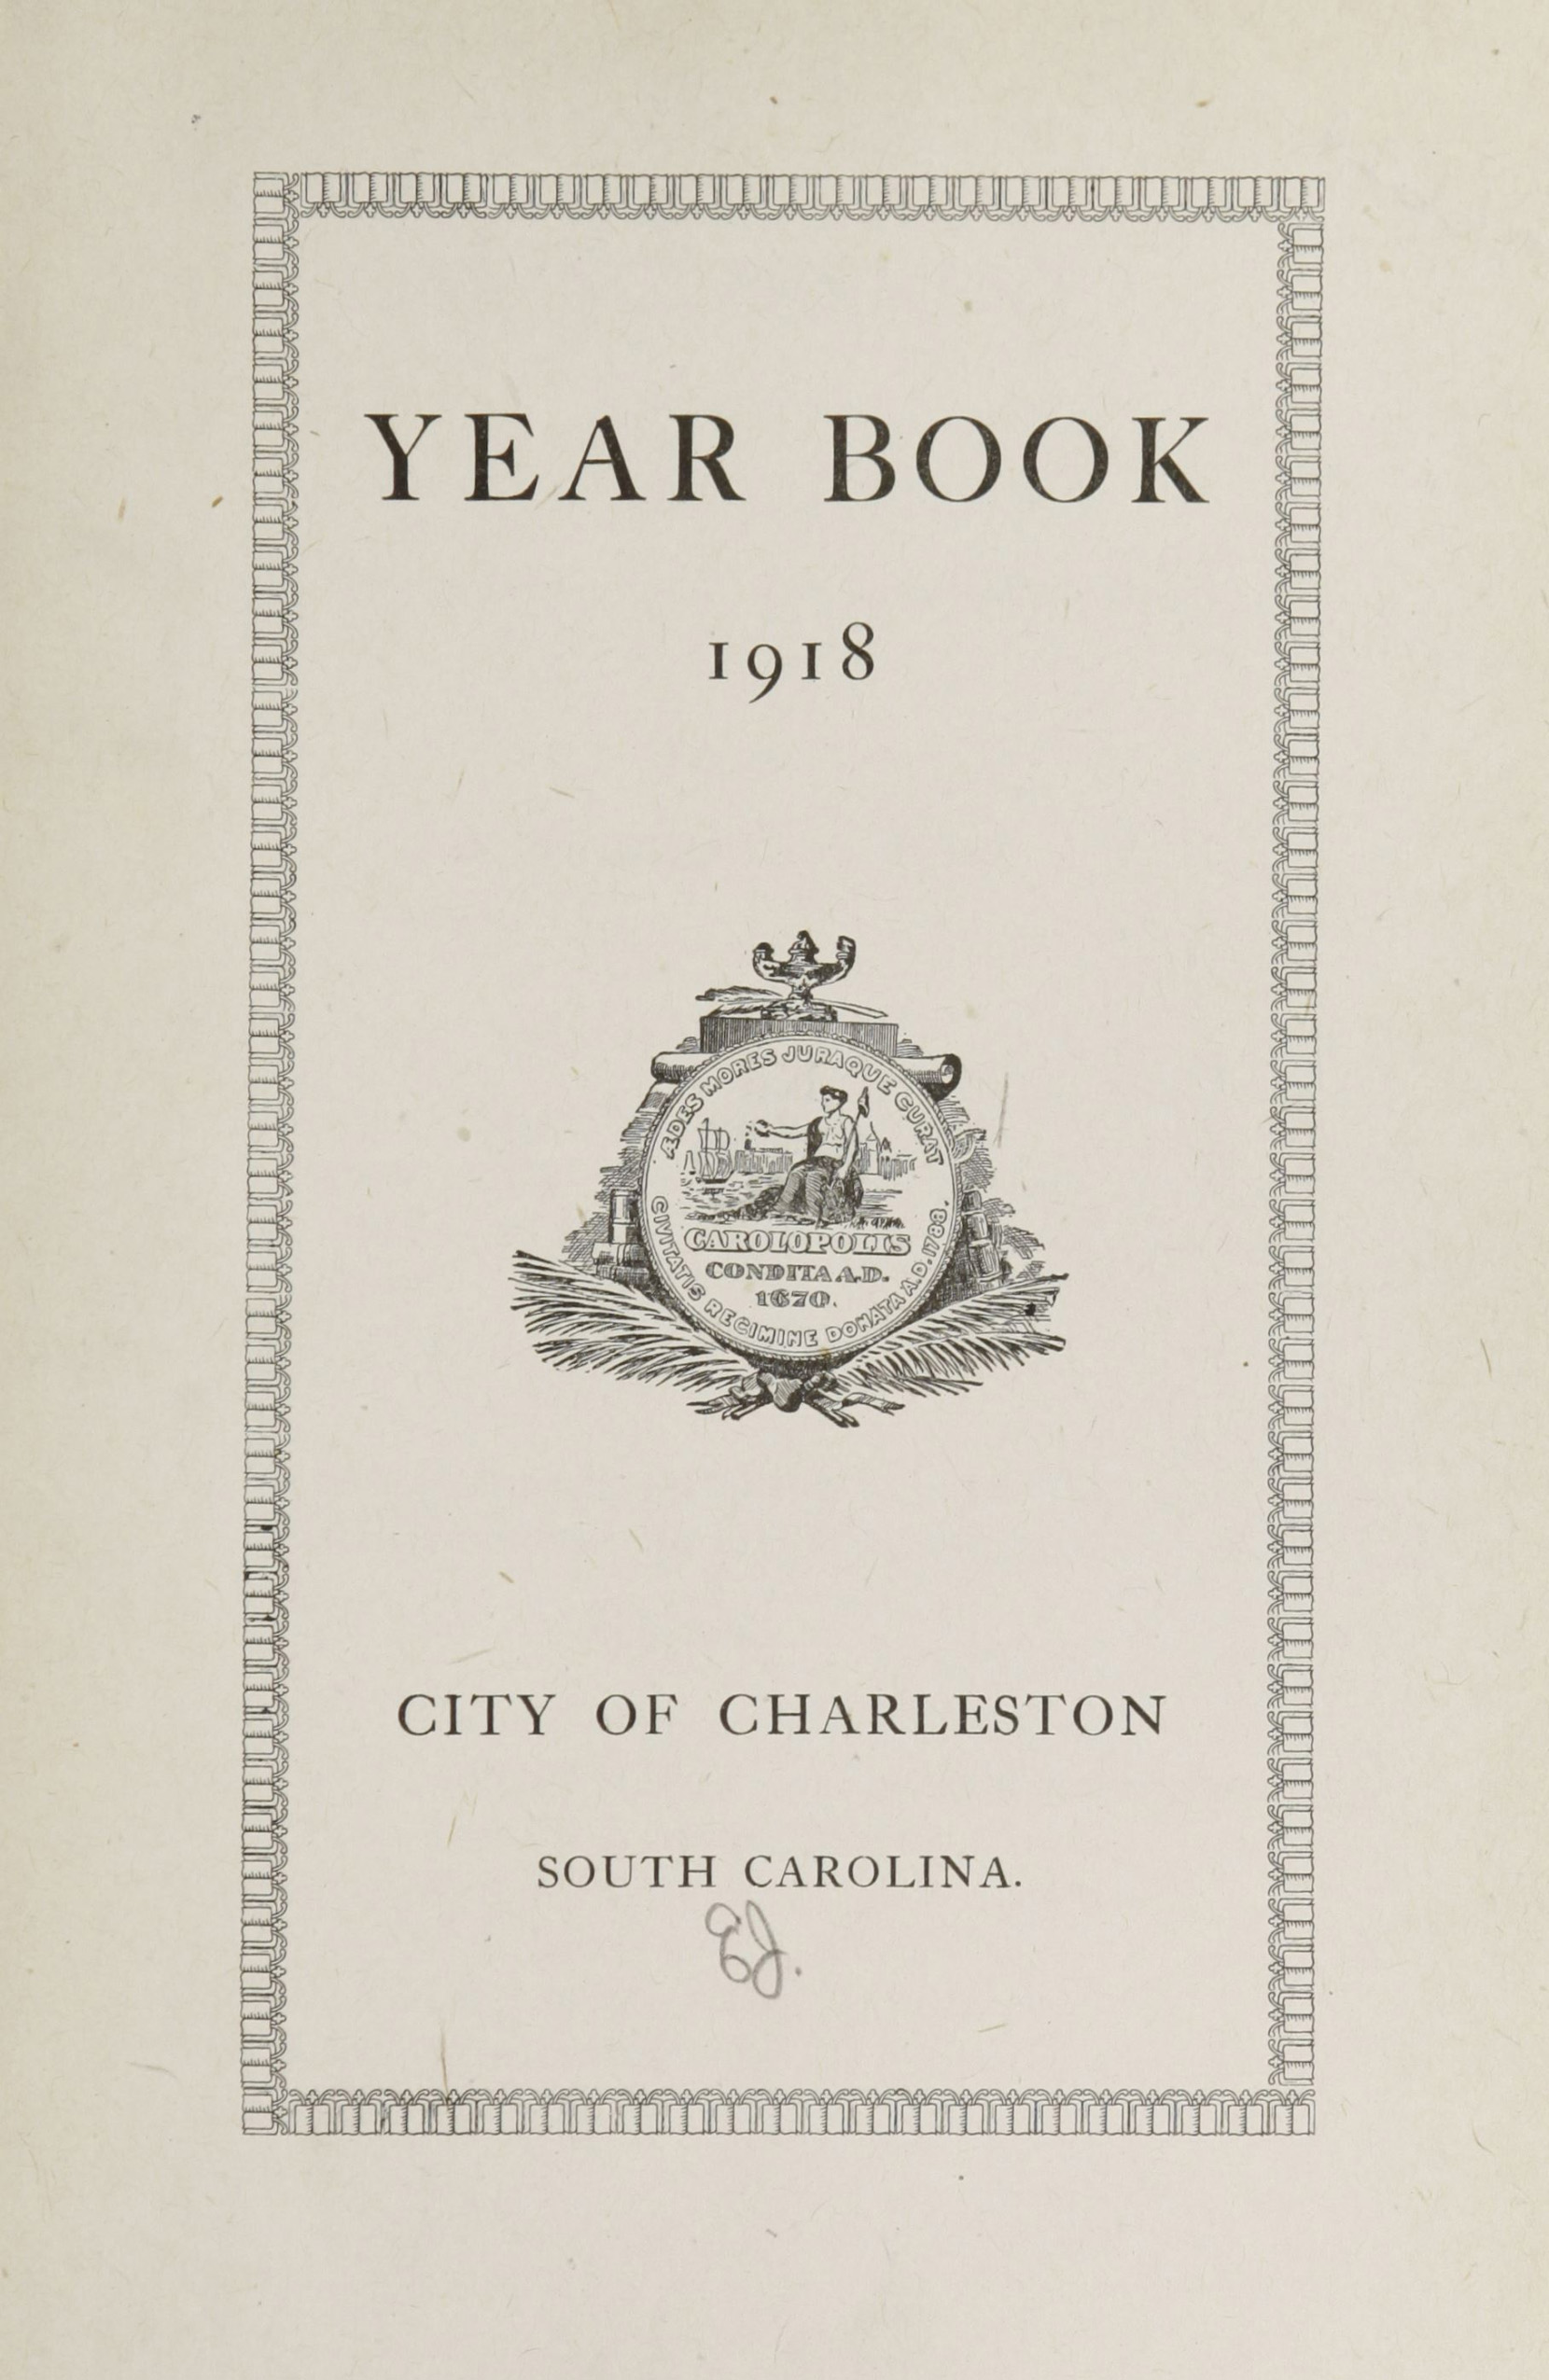 Charleston Yearbook, 1918, page i